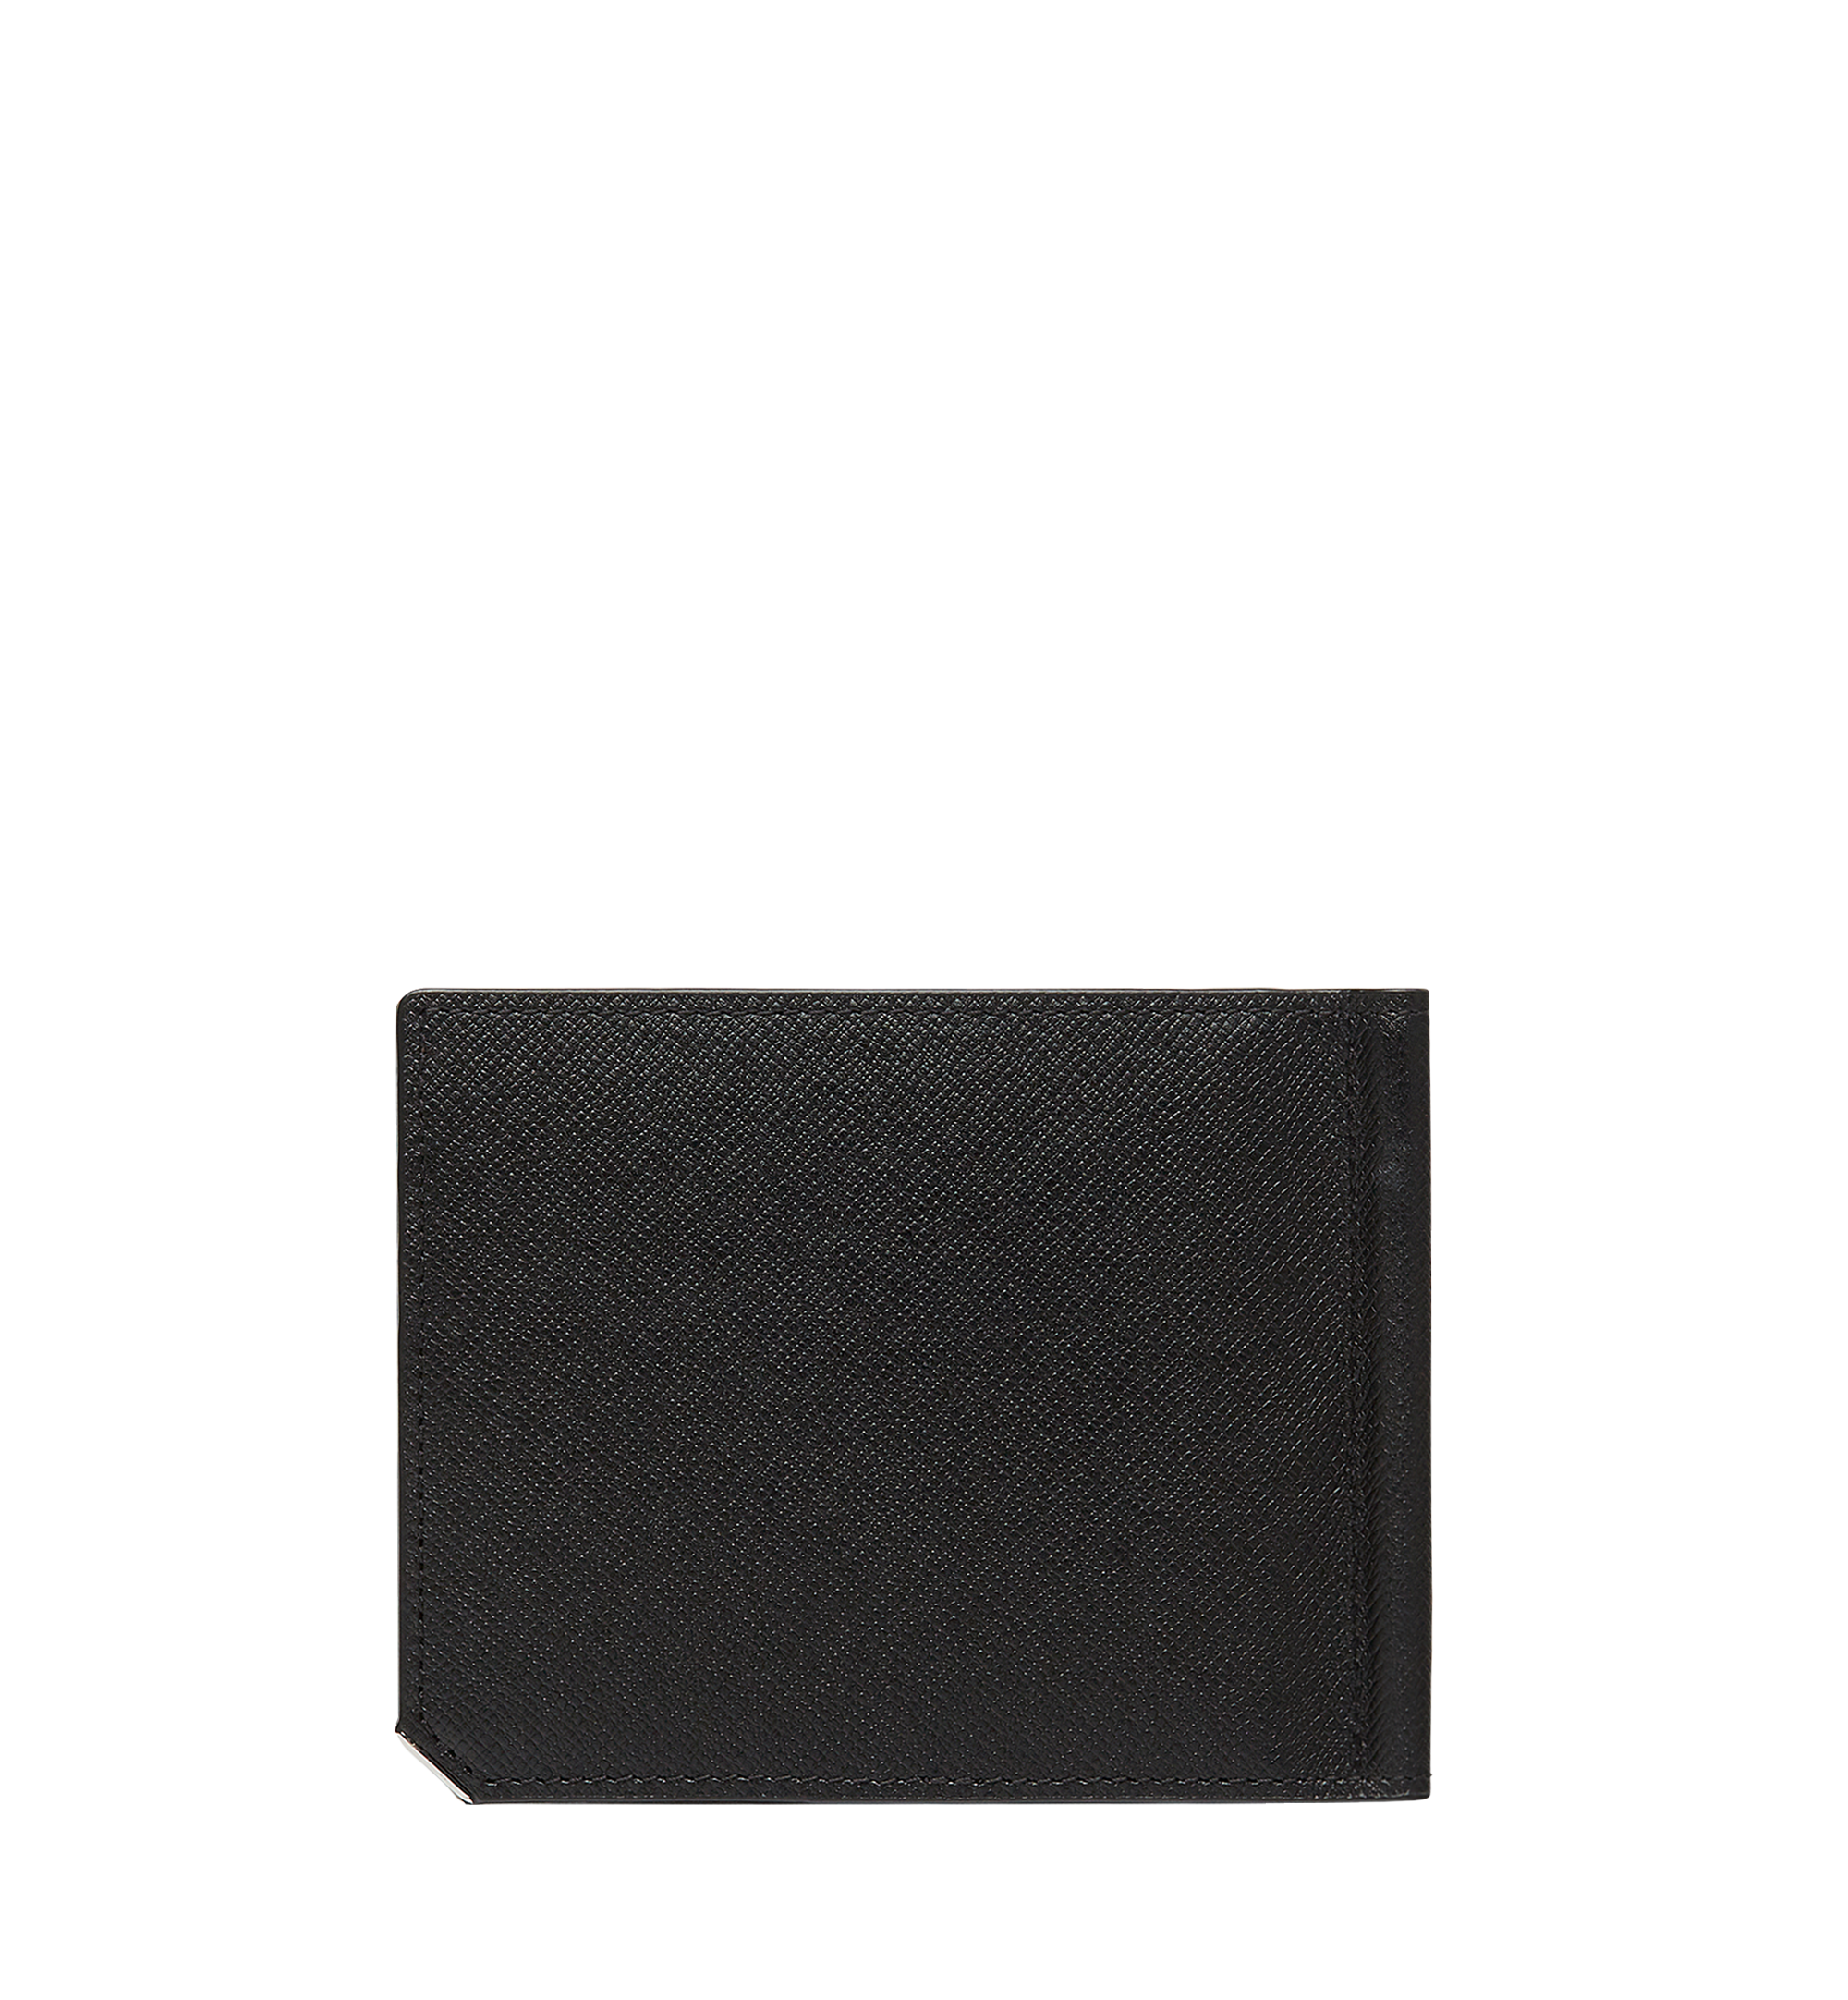 MCM New Bric Money Clip Wallet in Embossed Leather Black MXC8ALL45BK001 Alternate View 2